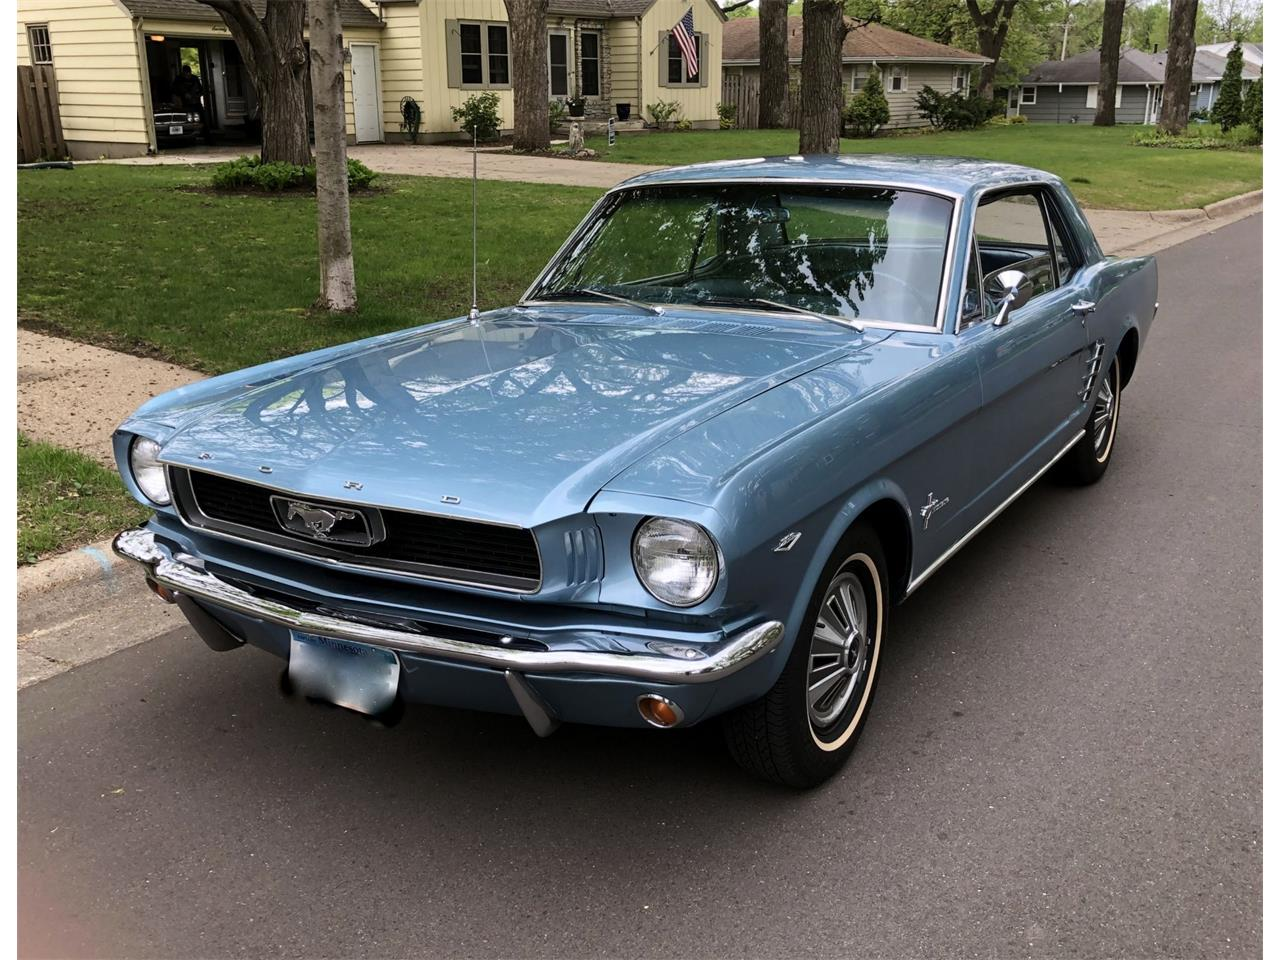 Large Picture of '66 Mustang - $15,950.00 - Q5C2